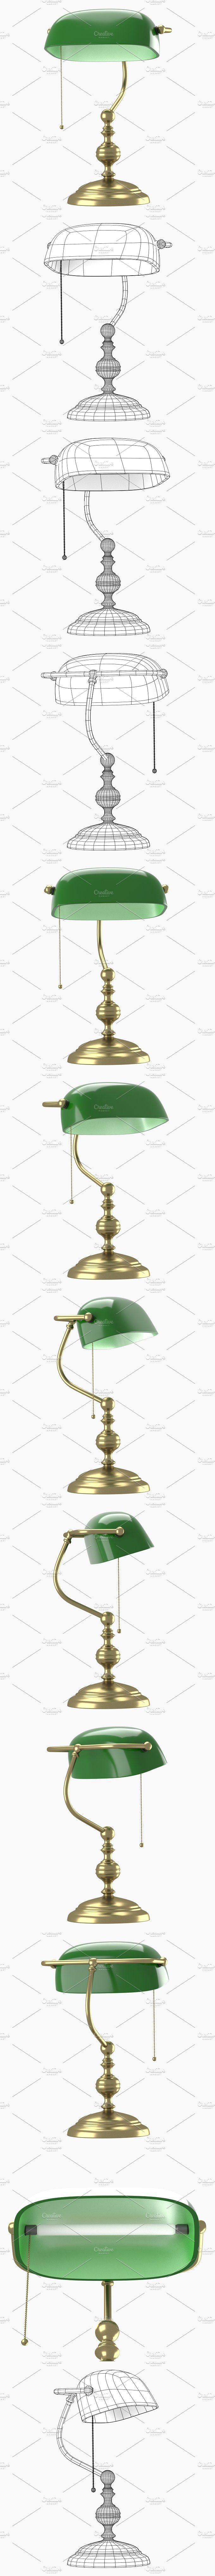 Old style lamp with green dome. 3D Objects